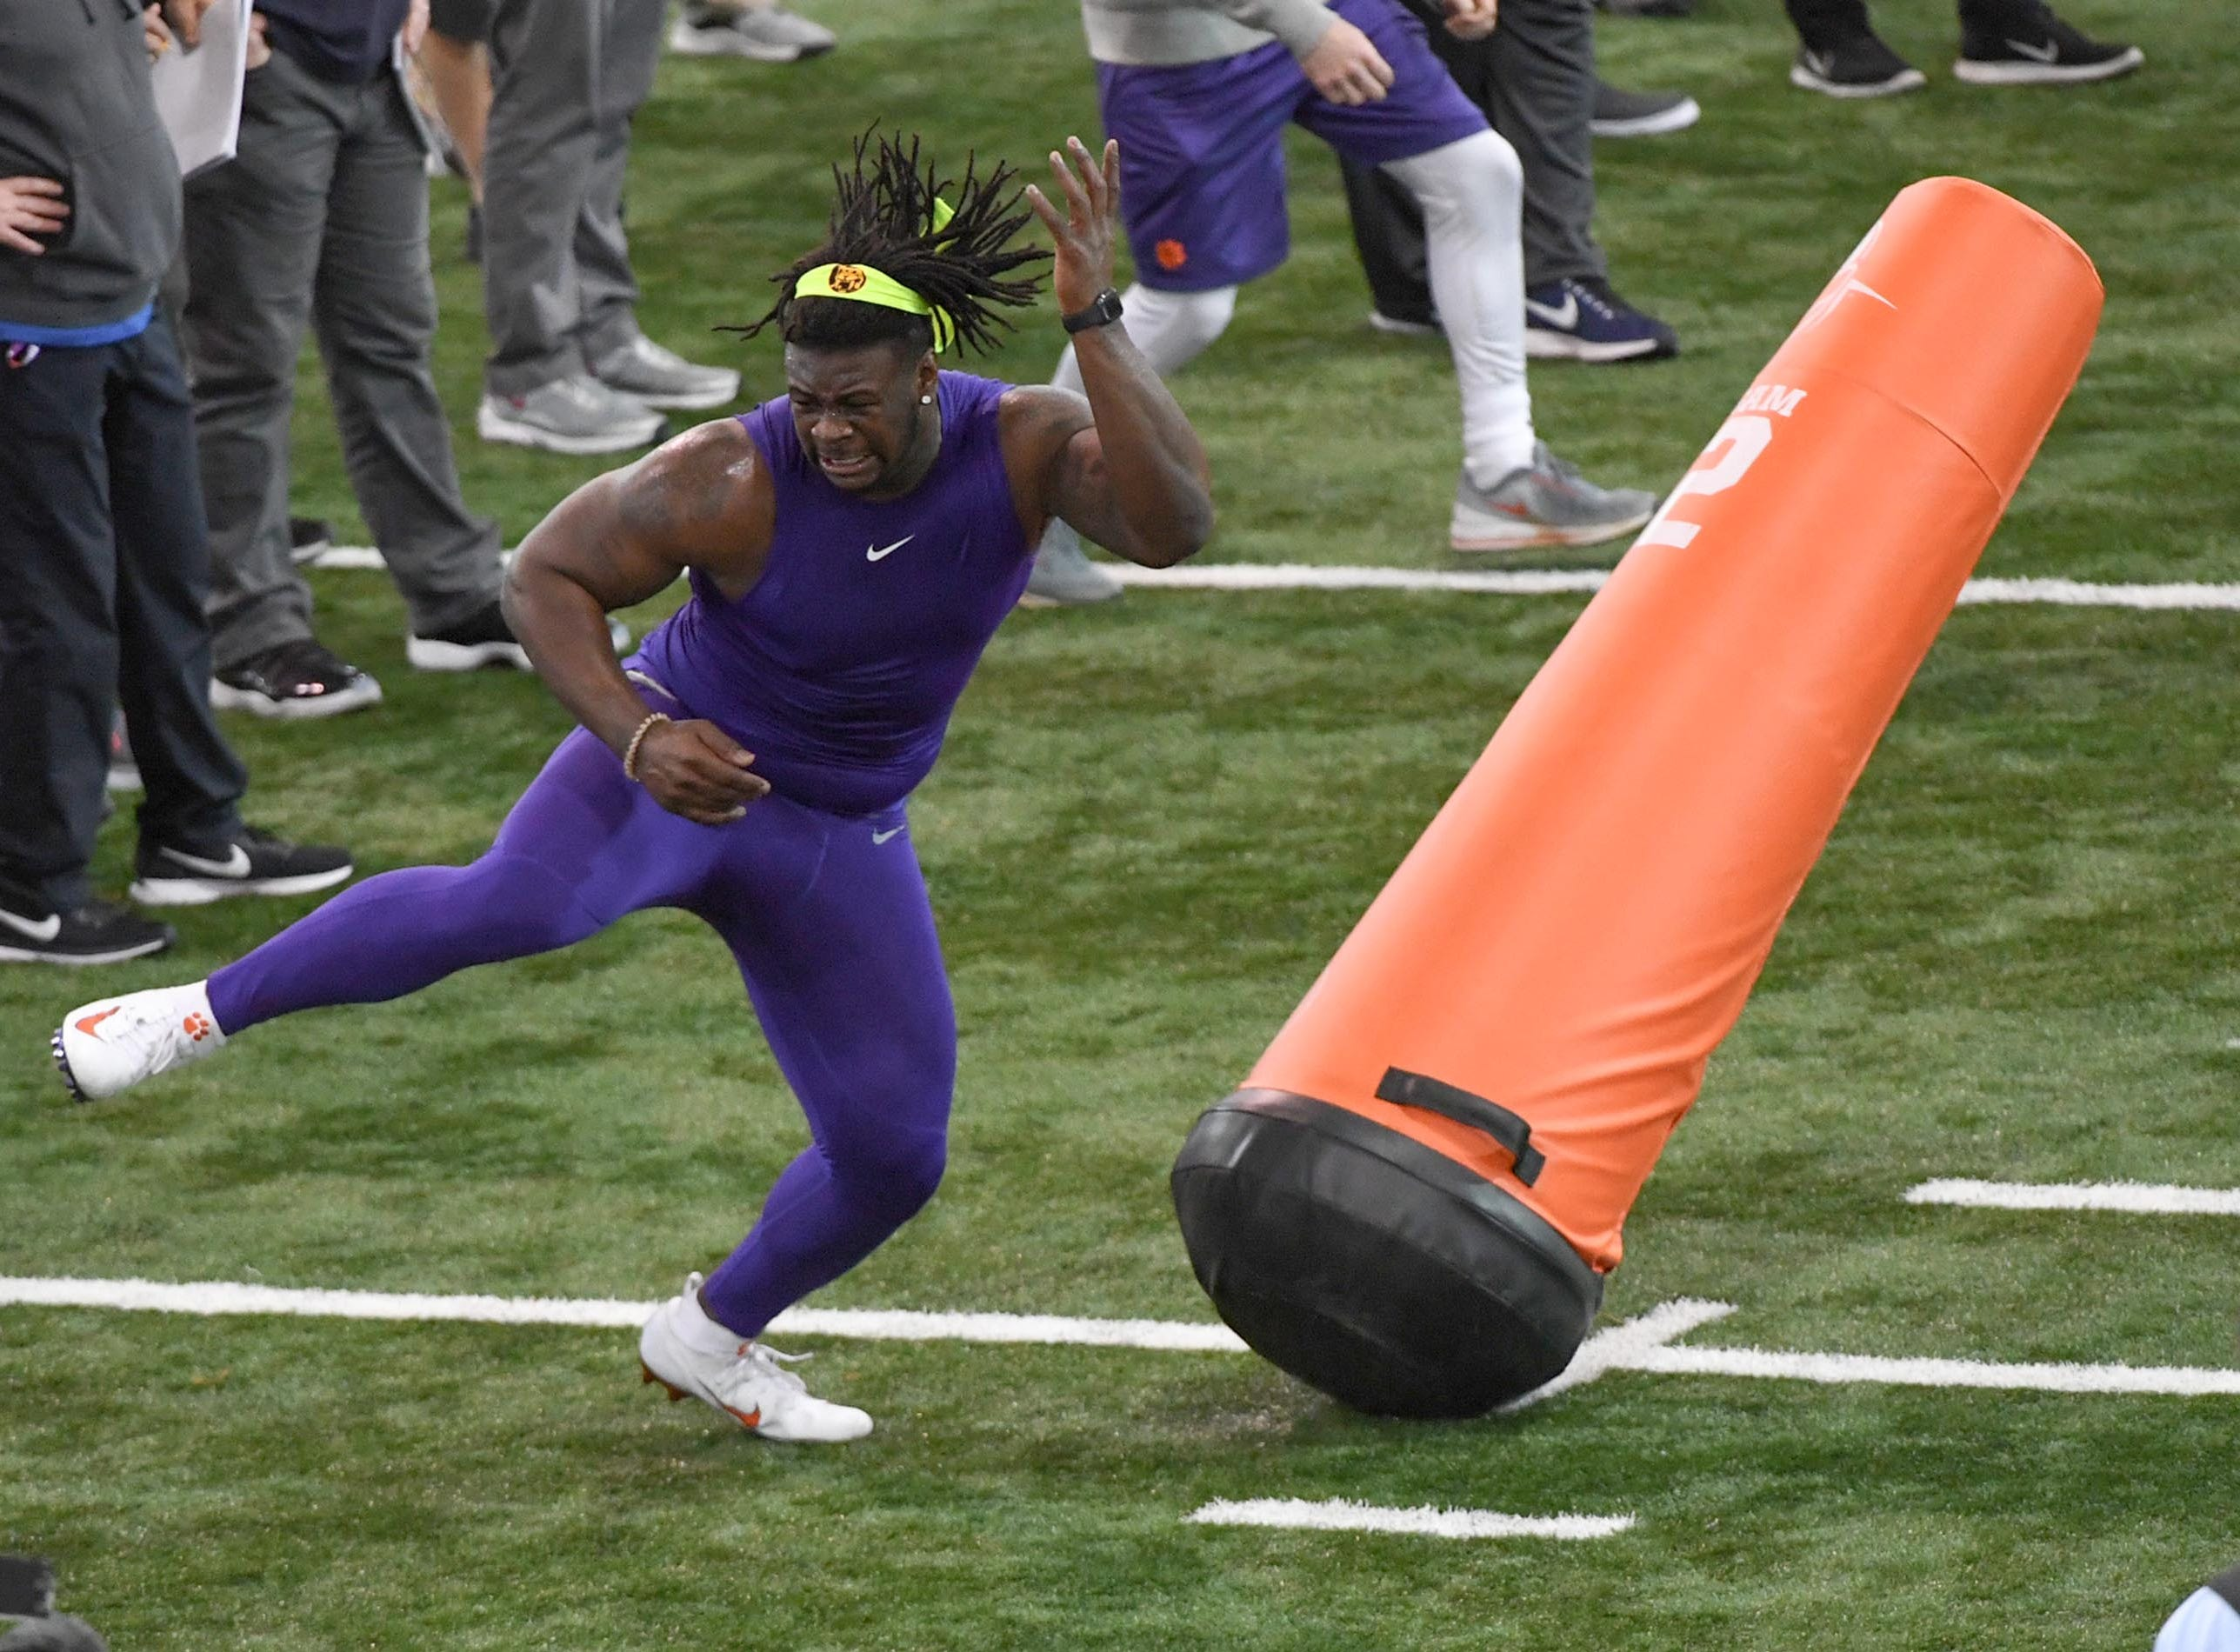 Defensive lineman Albert Huggins Jr. during Clemson pro day at the Poe Indoor Facility in Clemson Thursday, March 14, 2019.